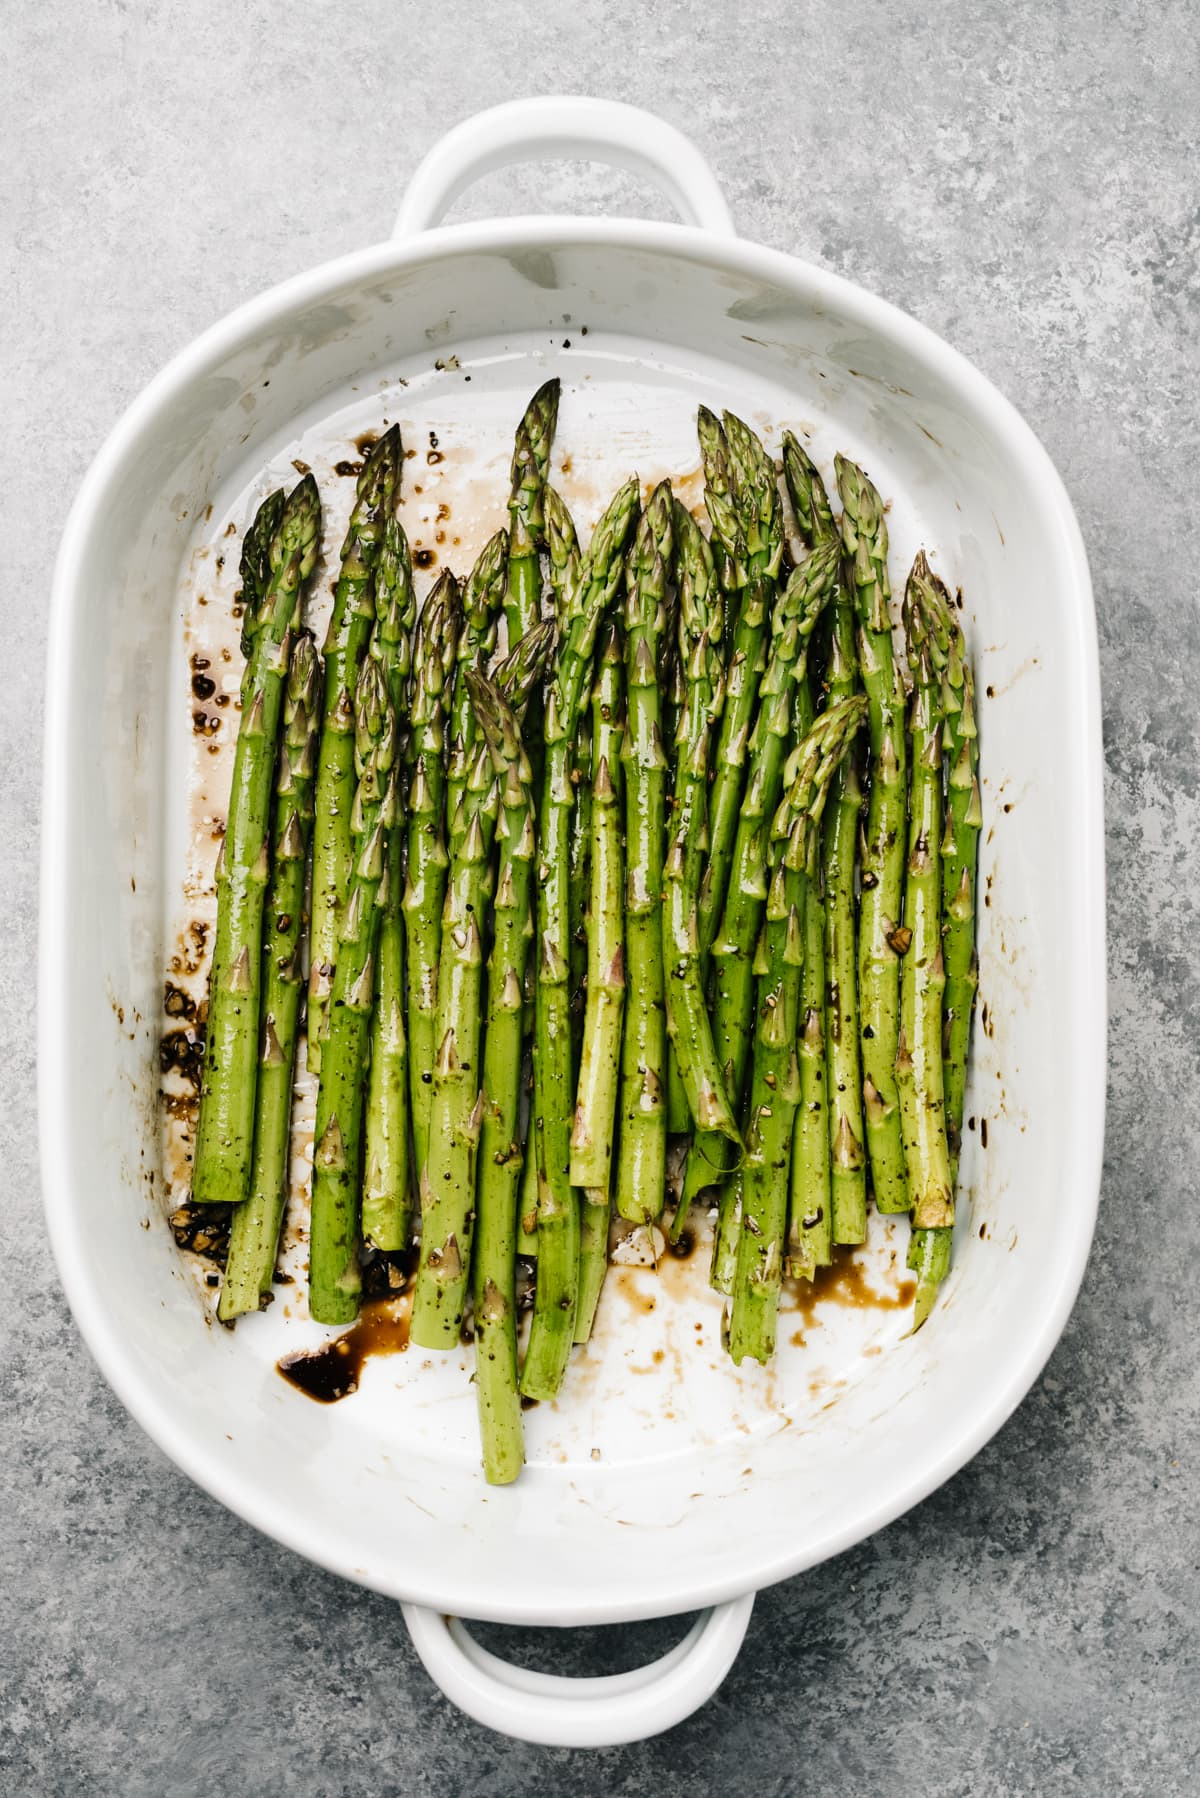 Asparagus spears in a casserole dish with olive oil, balsamic vinegar, salt, and pepper.